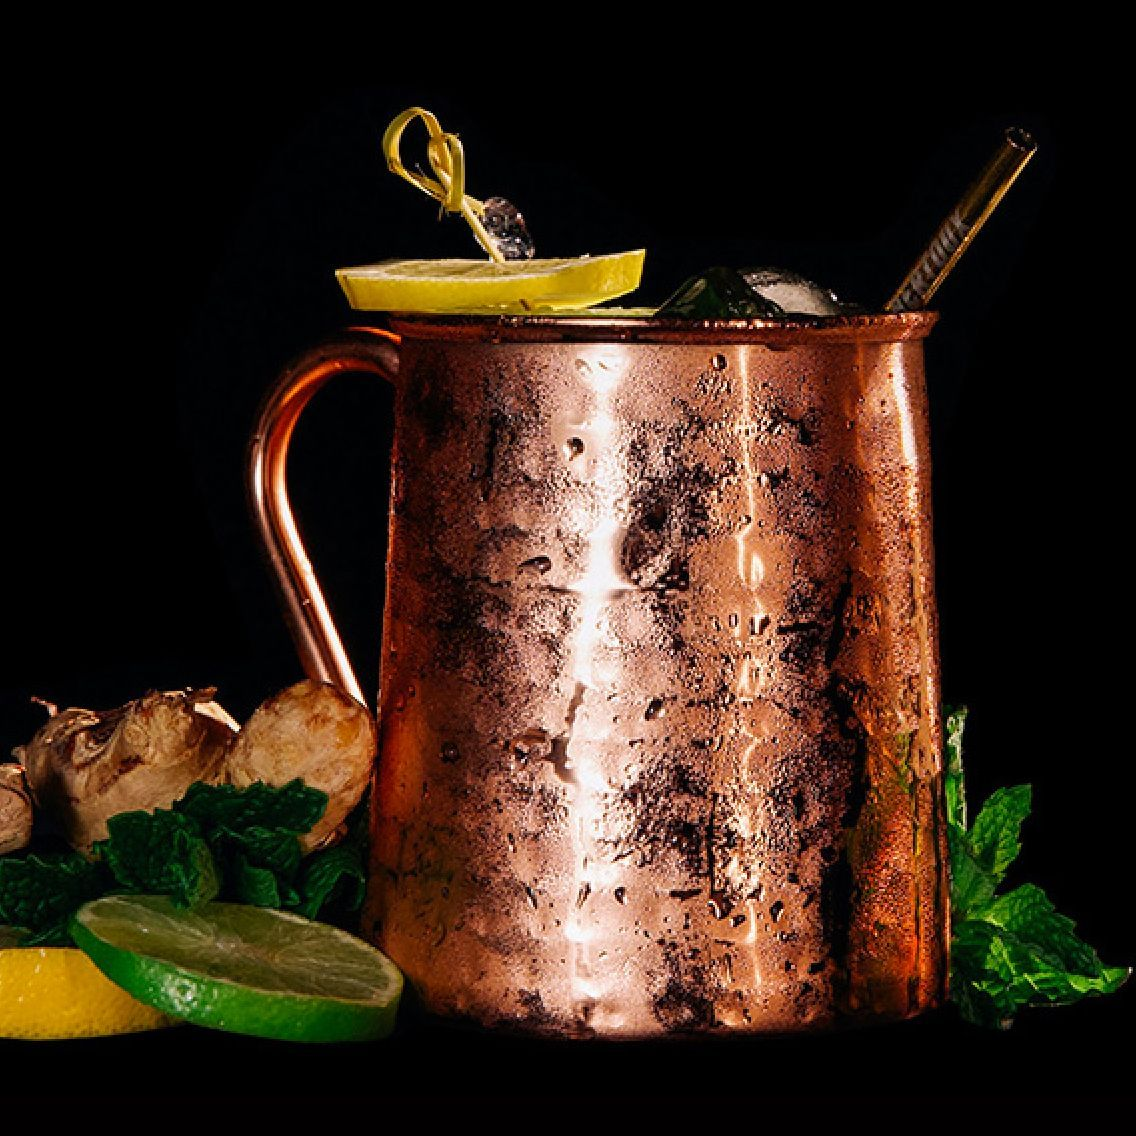 A creative gin version of a mule with Angostura Bitters to make it interesting.